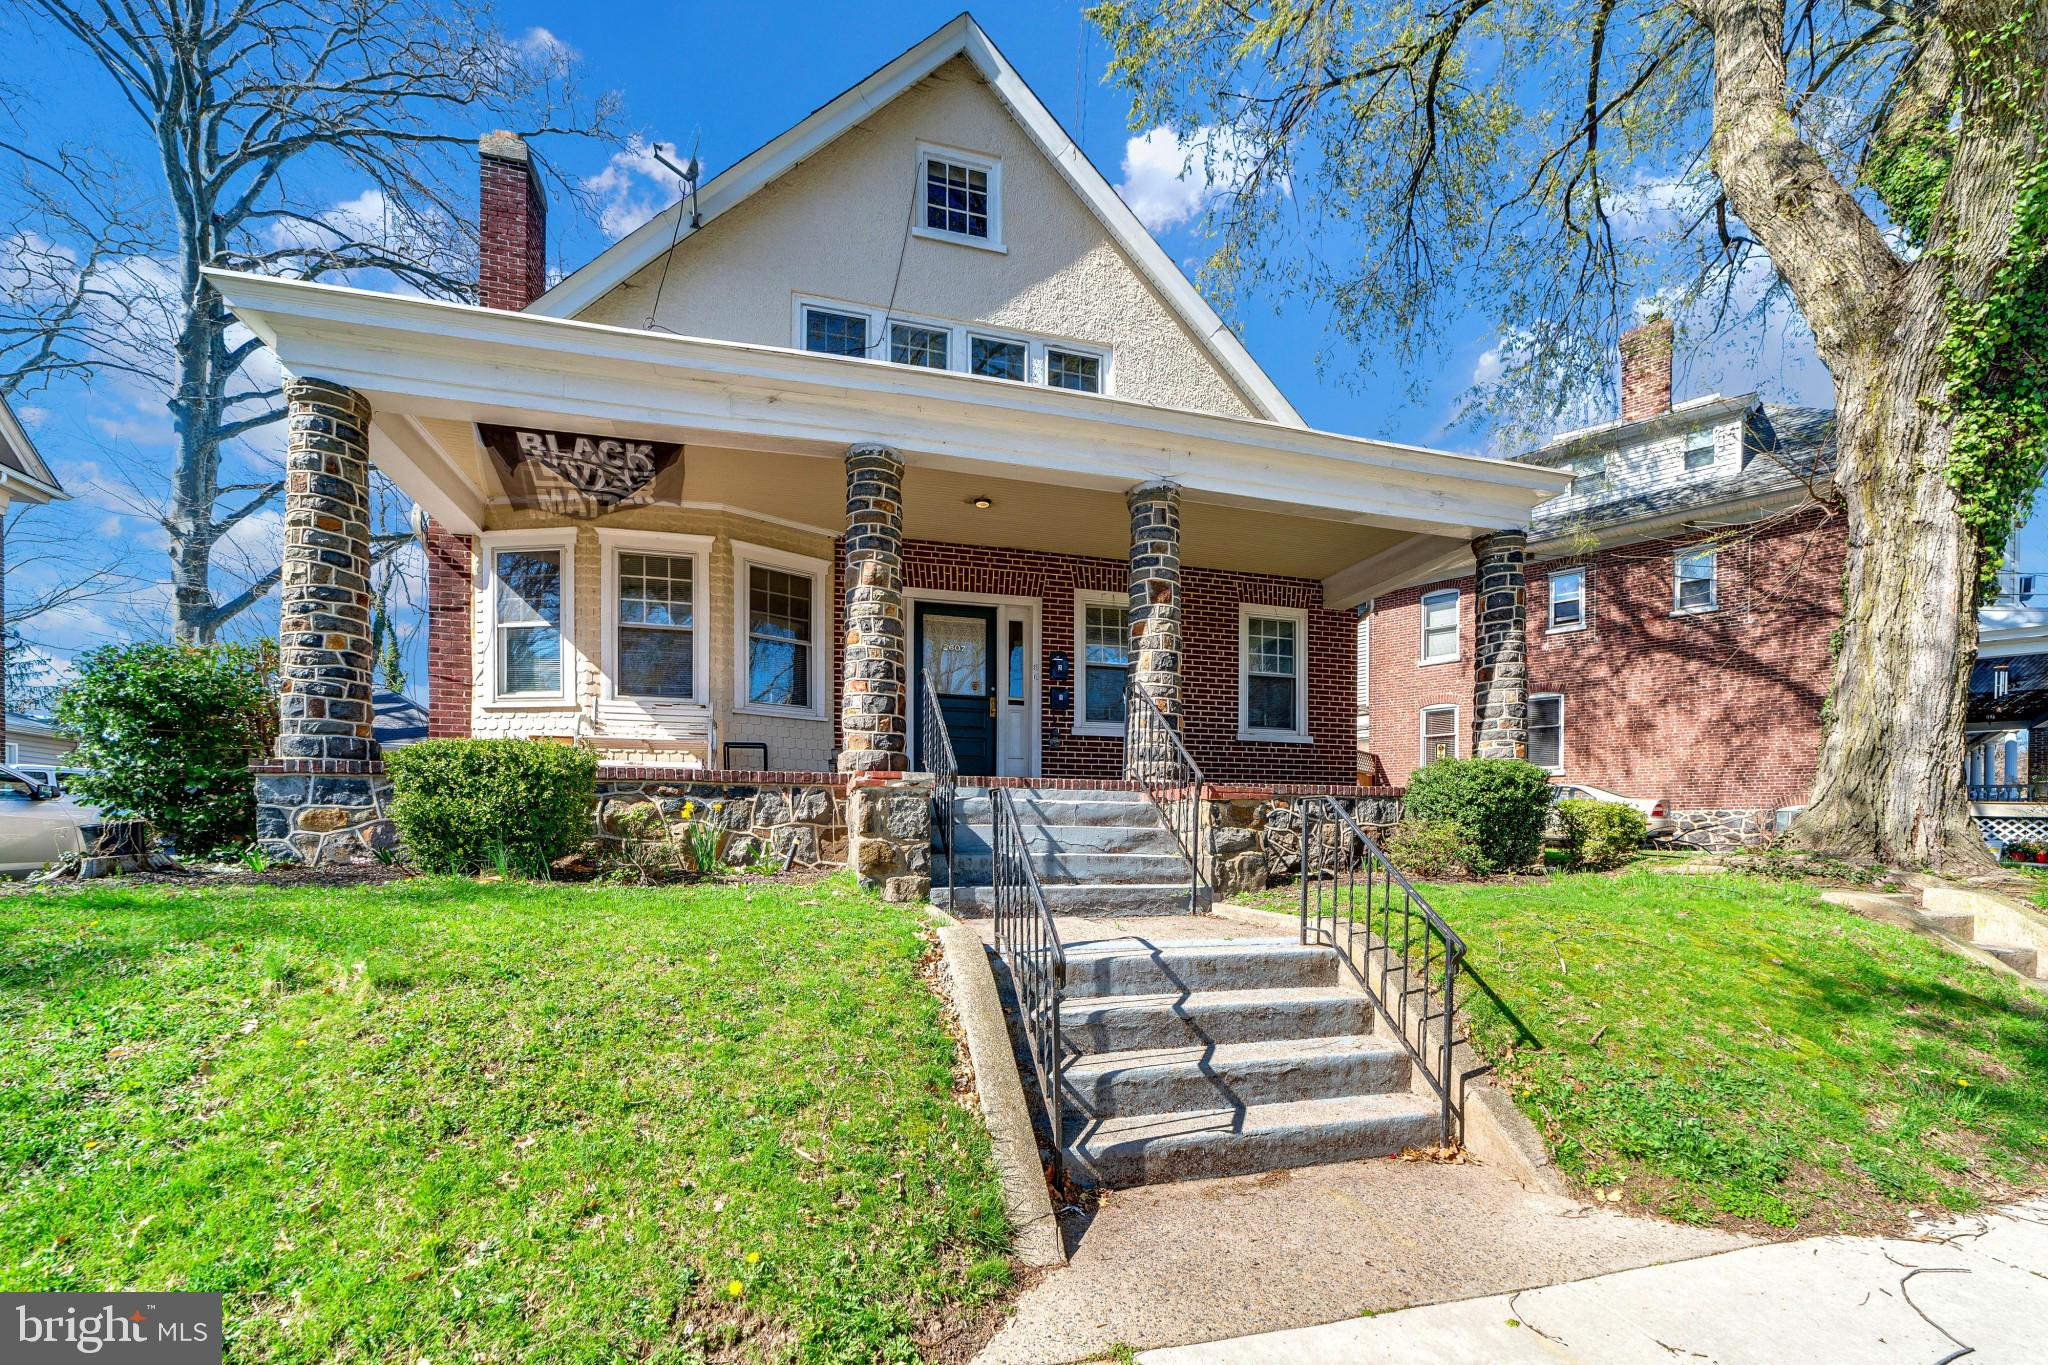 Welcome to 2607 N Franklin Street, an incredible investment opportunity with two 3 bedroom units and